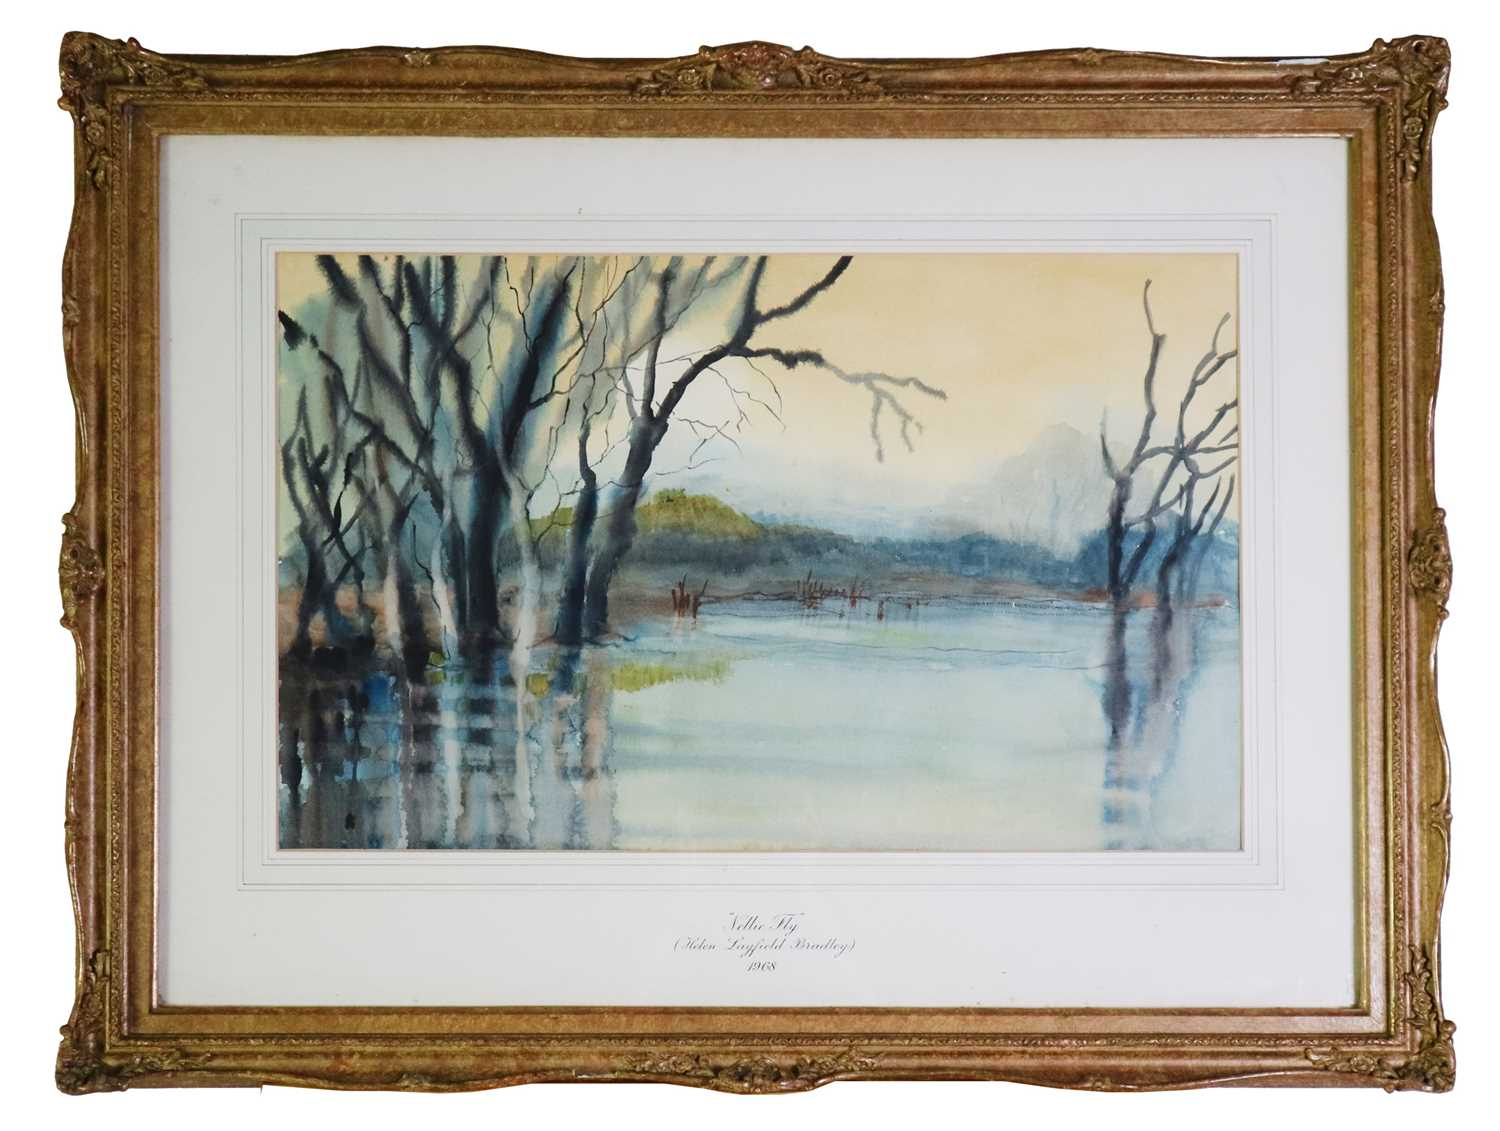 Helen Layfield Bradley (1900-1979) Nellie Fly, Watercolour of a Lakeside with Trees